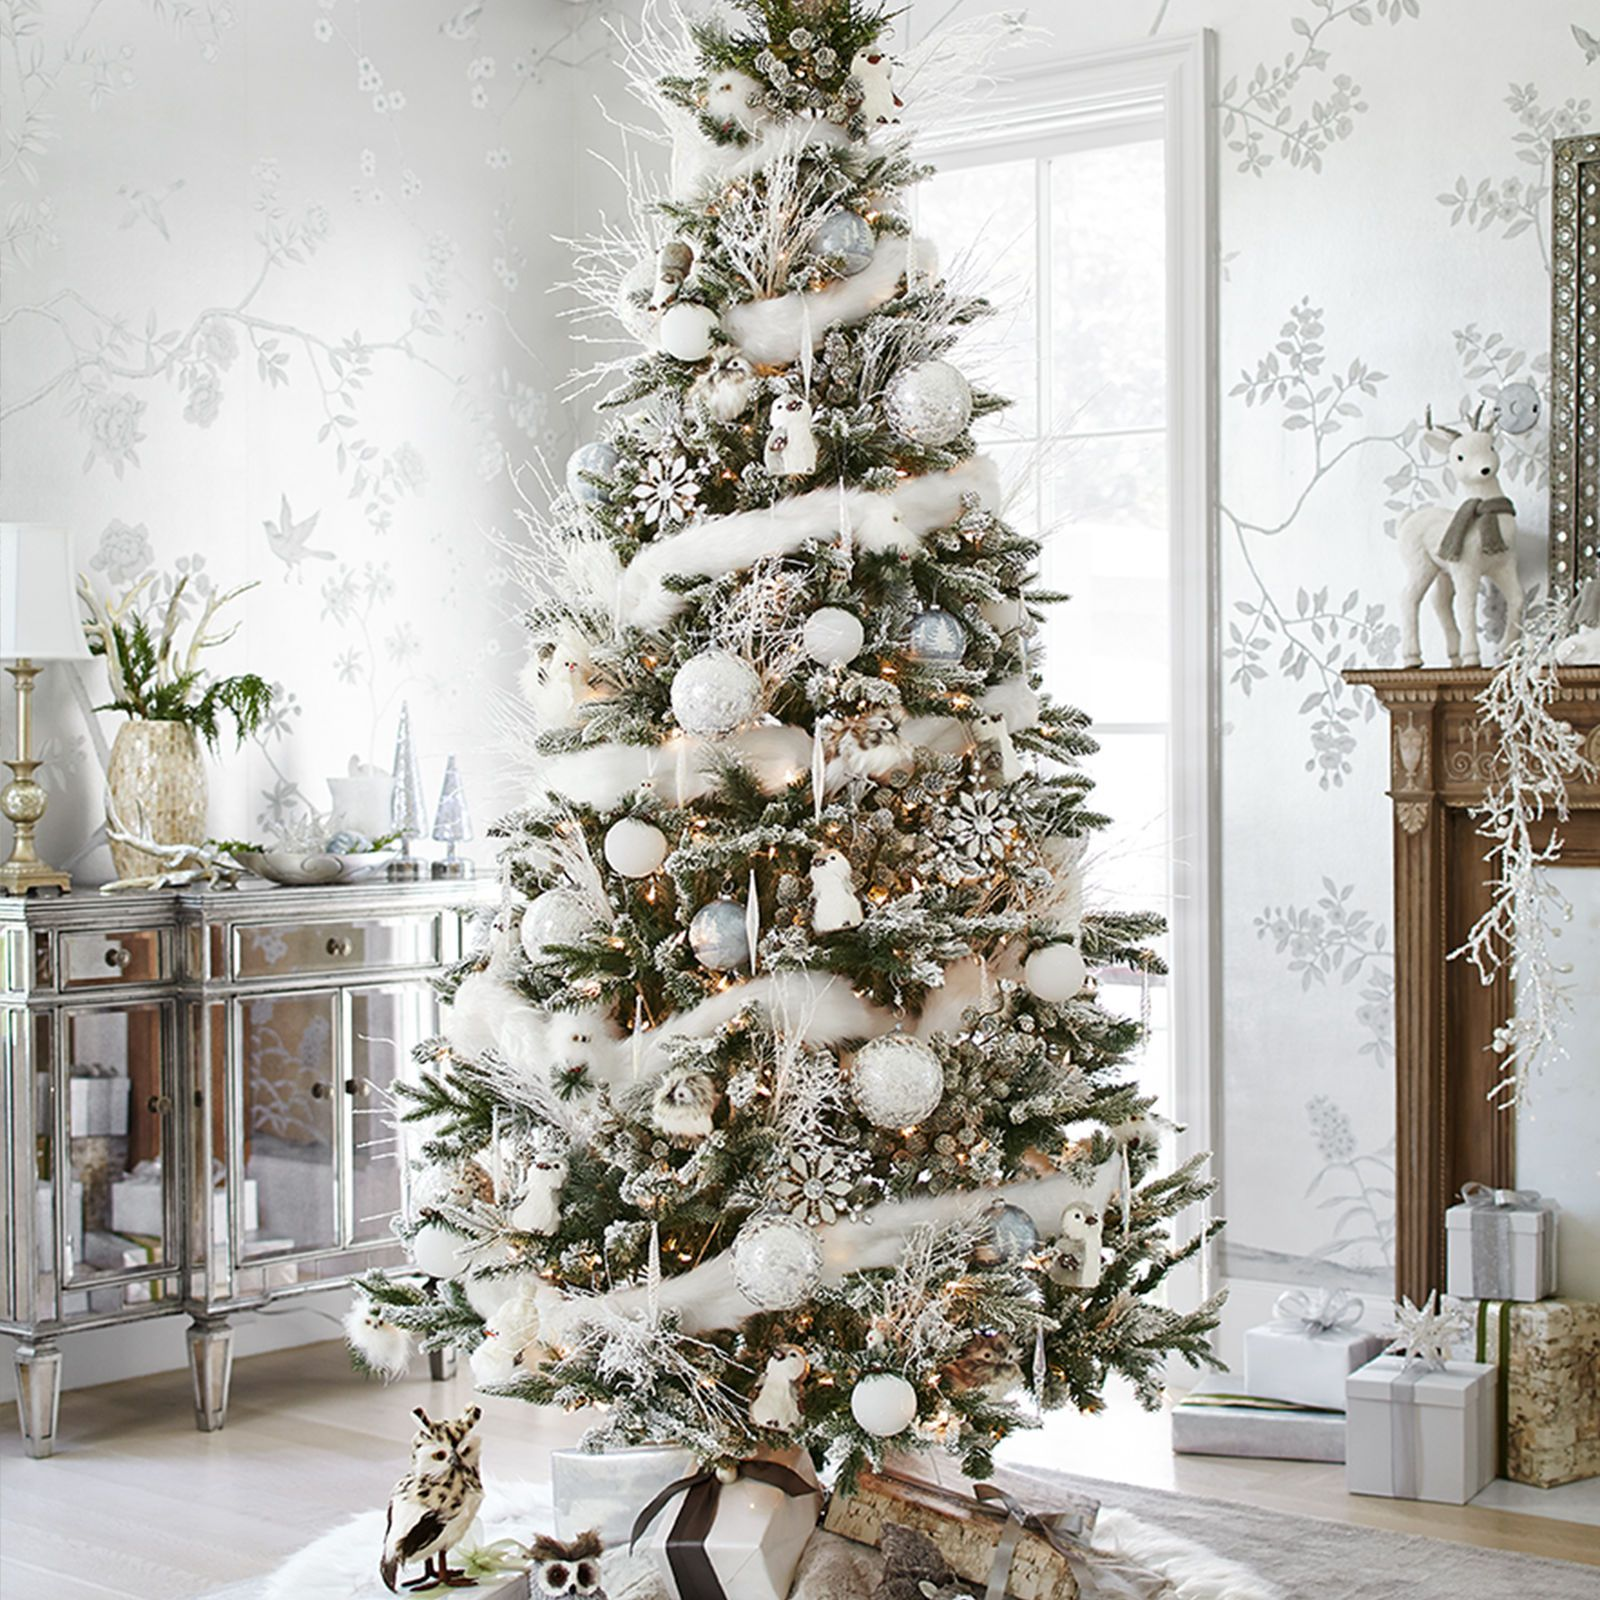 An indoor winter wonderland awaits you. Christmas tree branches ...